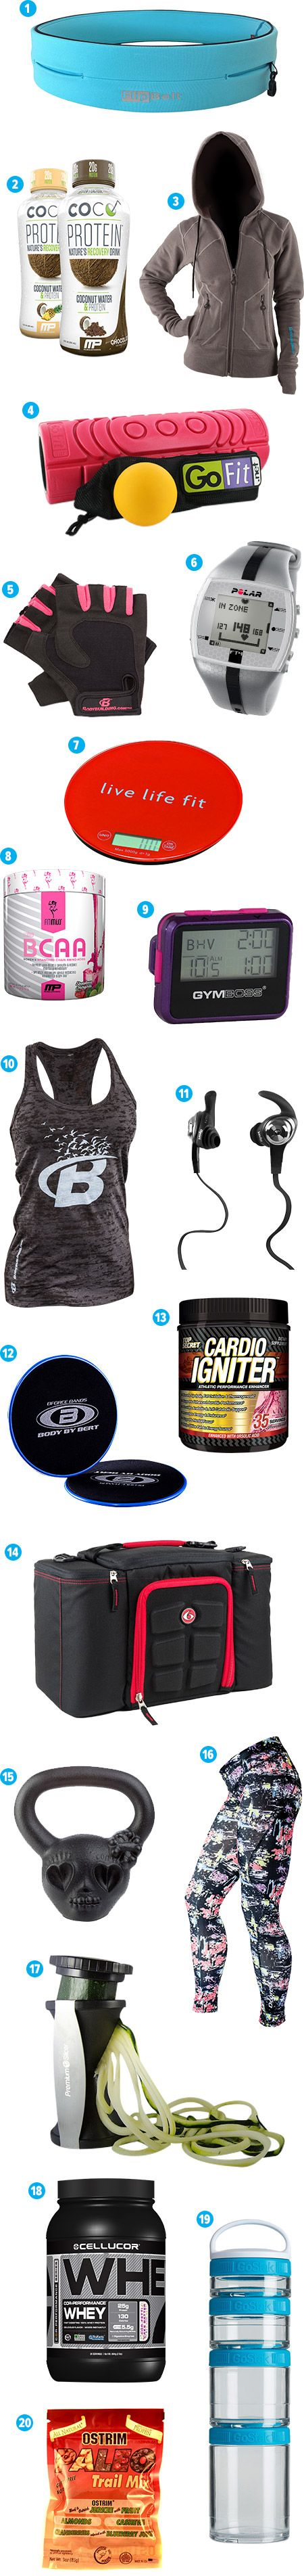 Bodybuilding.com - Workout Gear For Women